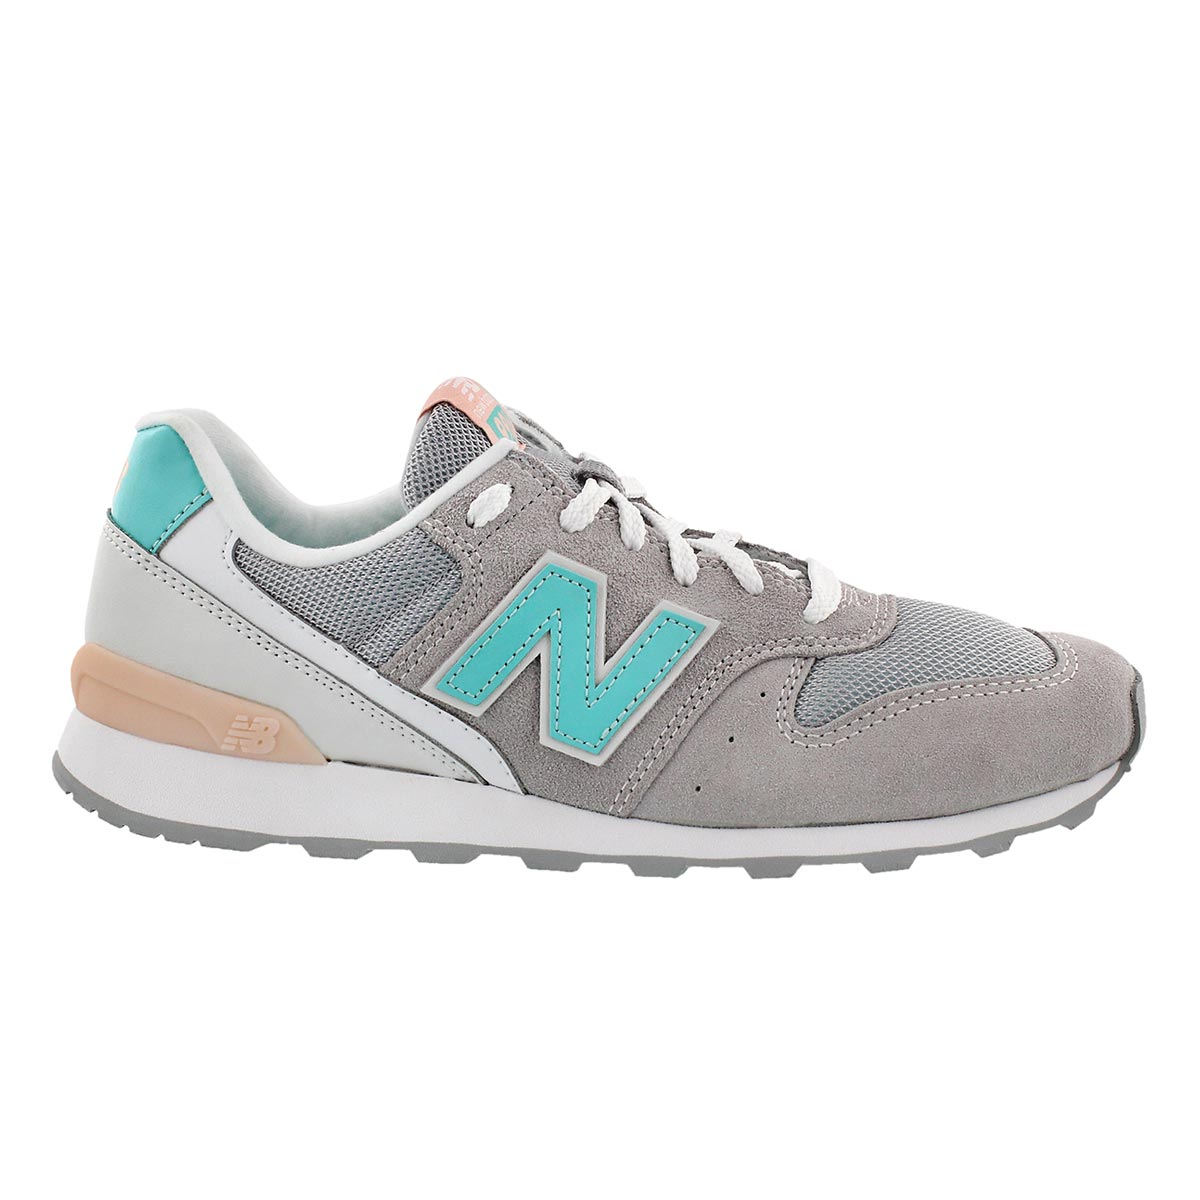 Lds 996 grey/white/teal lace up sneaker